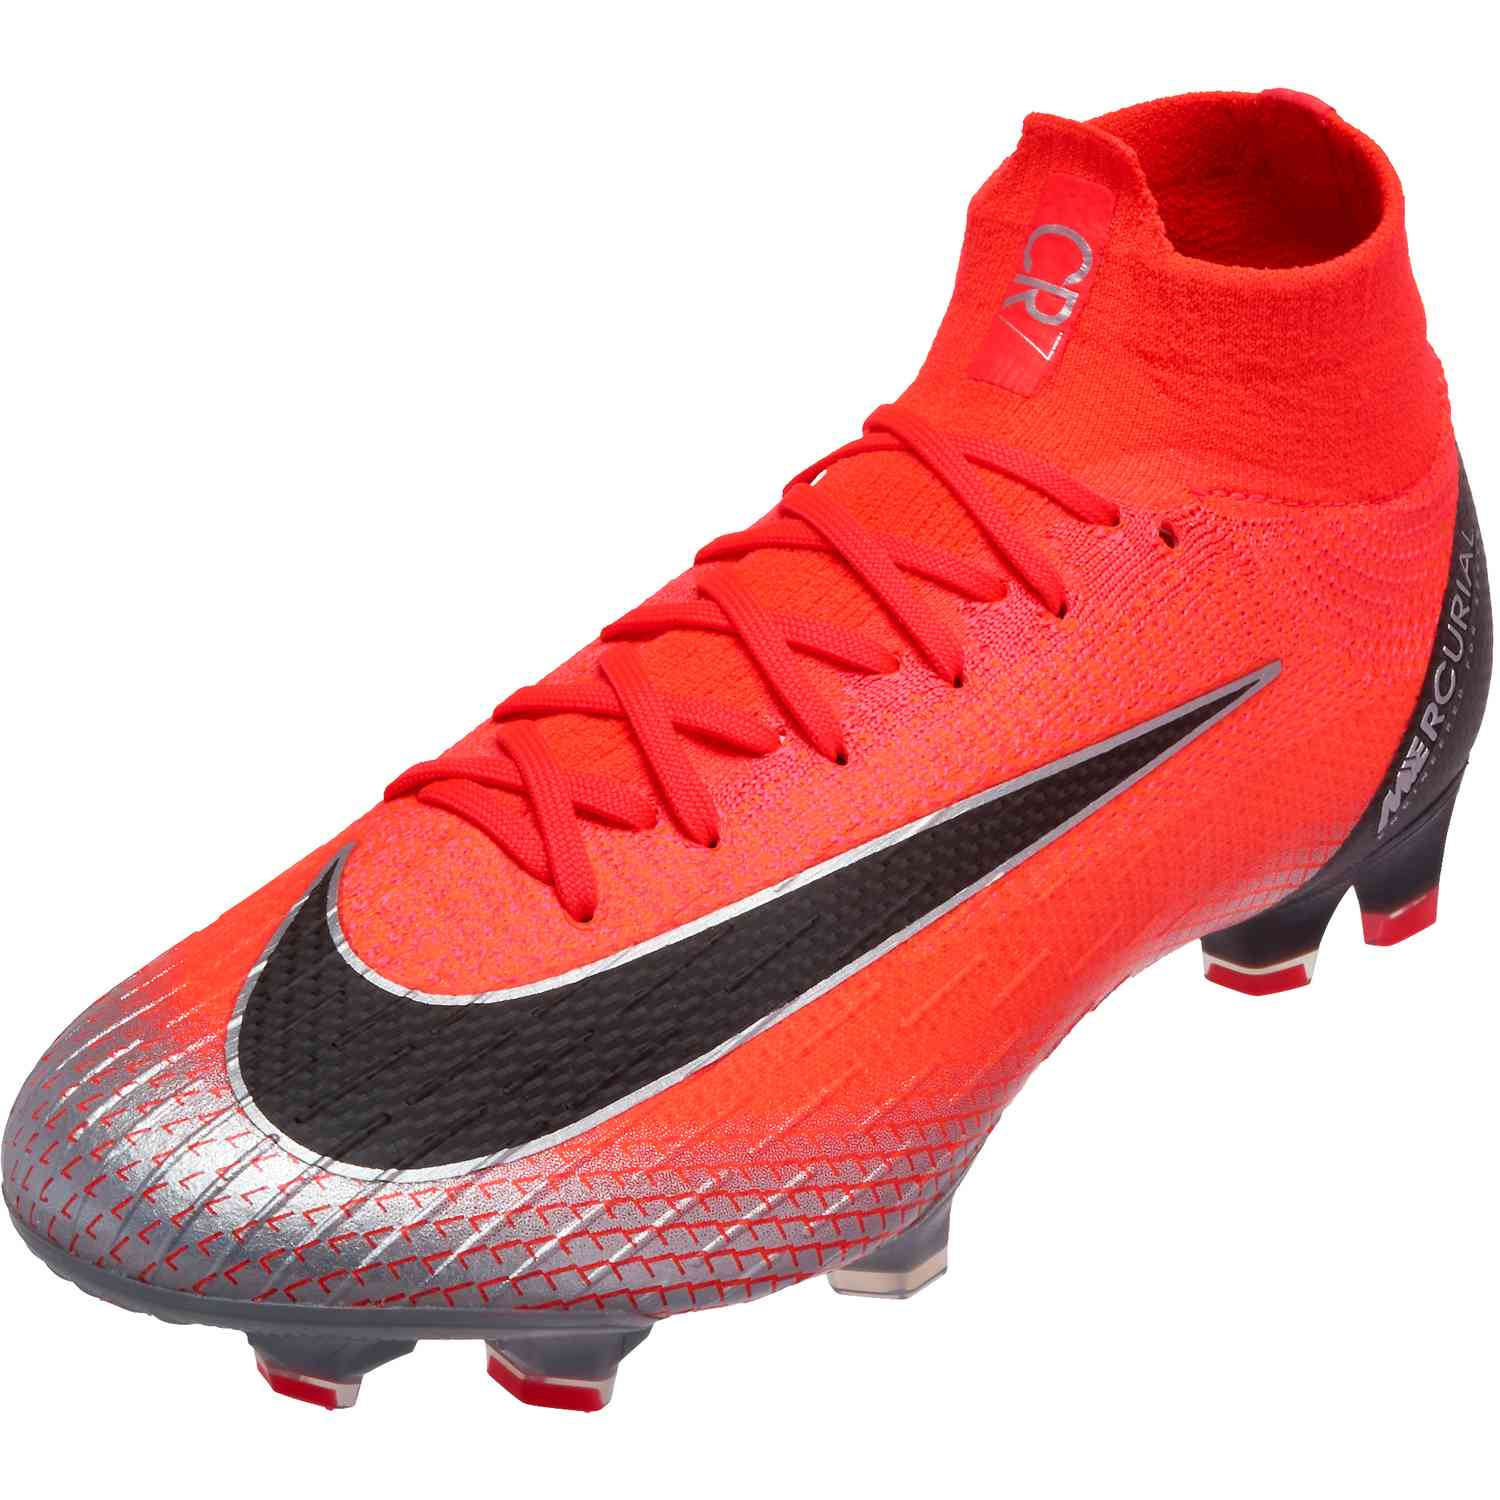 ad9d08a35506 Nike CR7 Mercurial Superfly Elite - Chapter 7 - SoccerPro.com